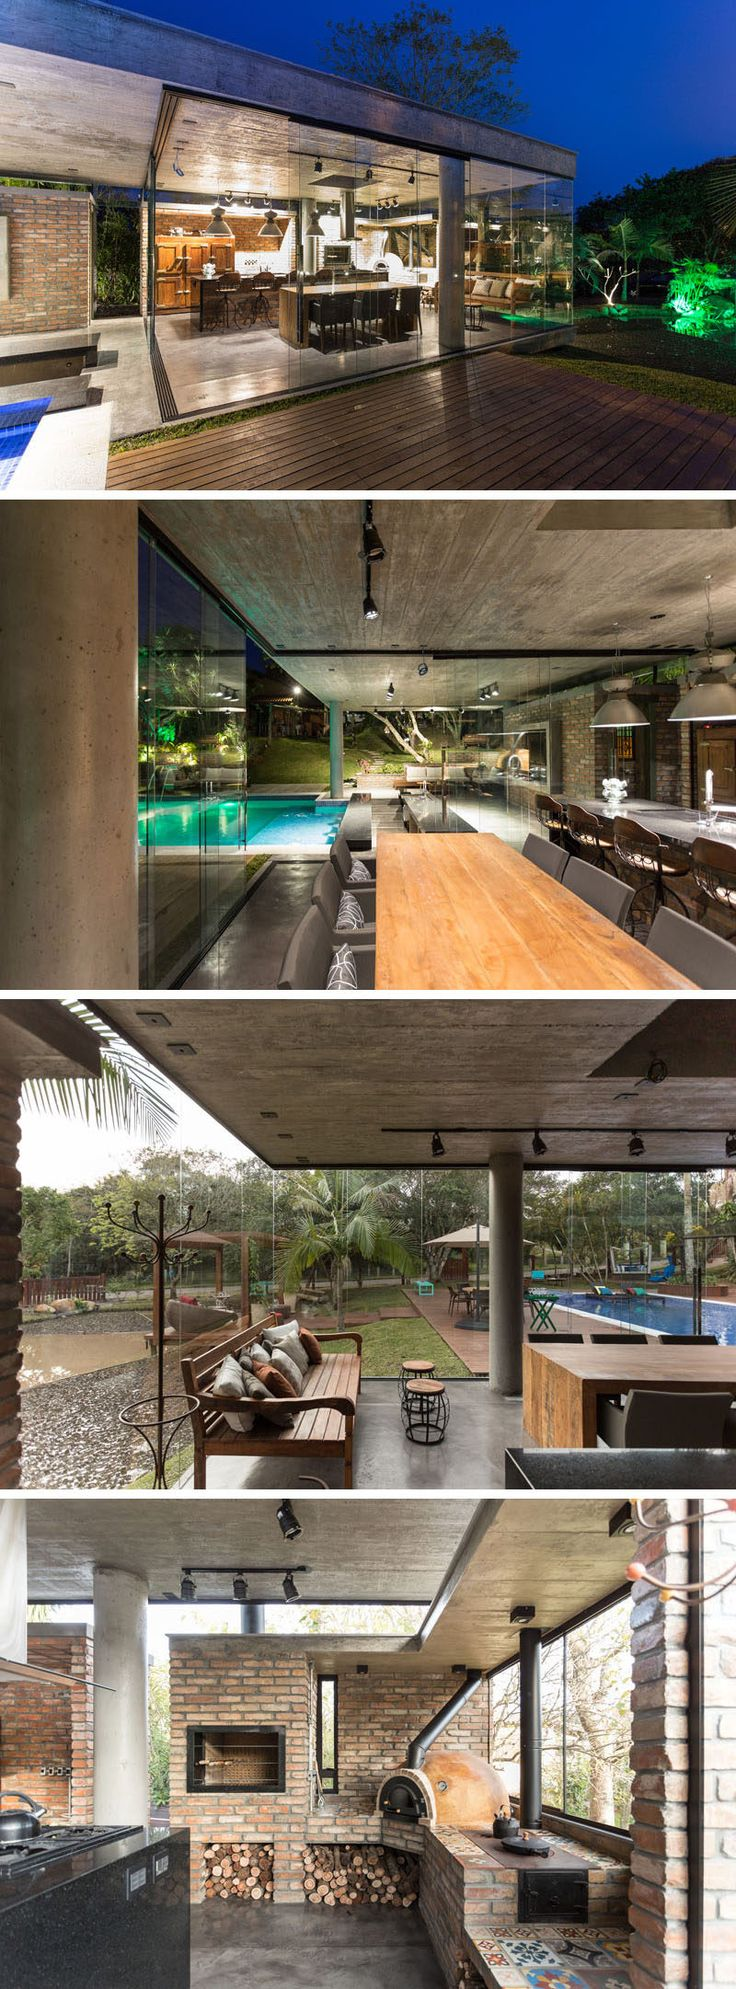 This pool house is a concrete, brick and glass room with a kitchen, dining area, sitting area and a wood-fire oven. The glass walls retract to open the space up to the pool deck.